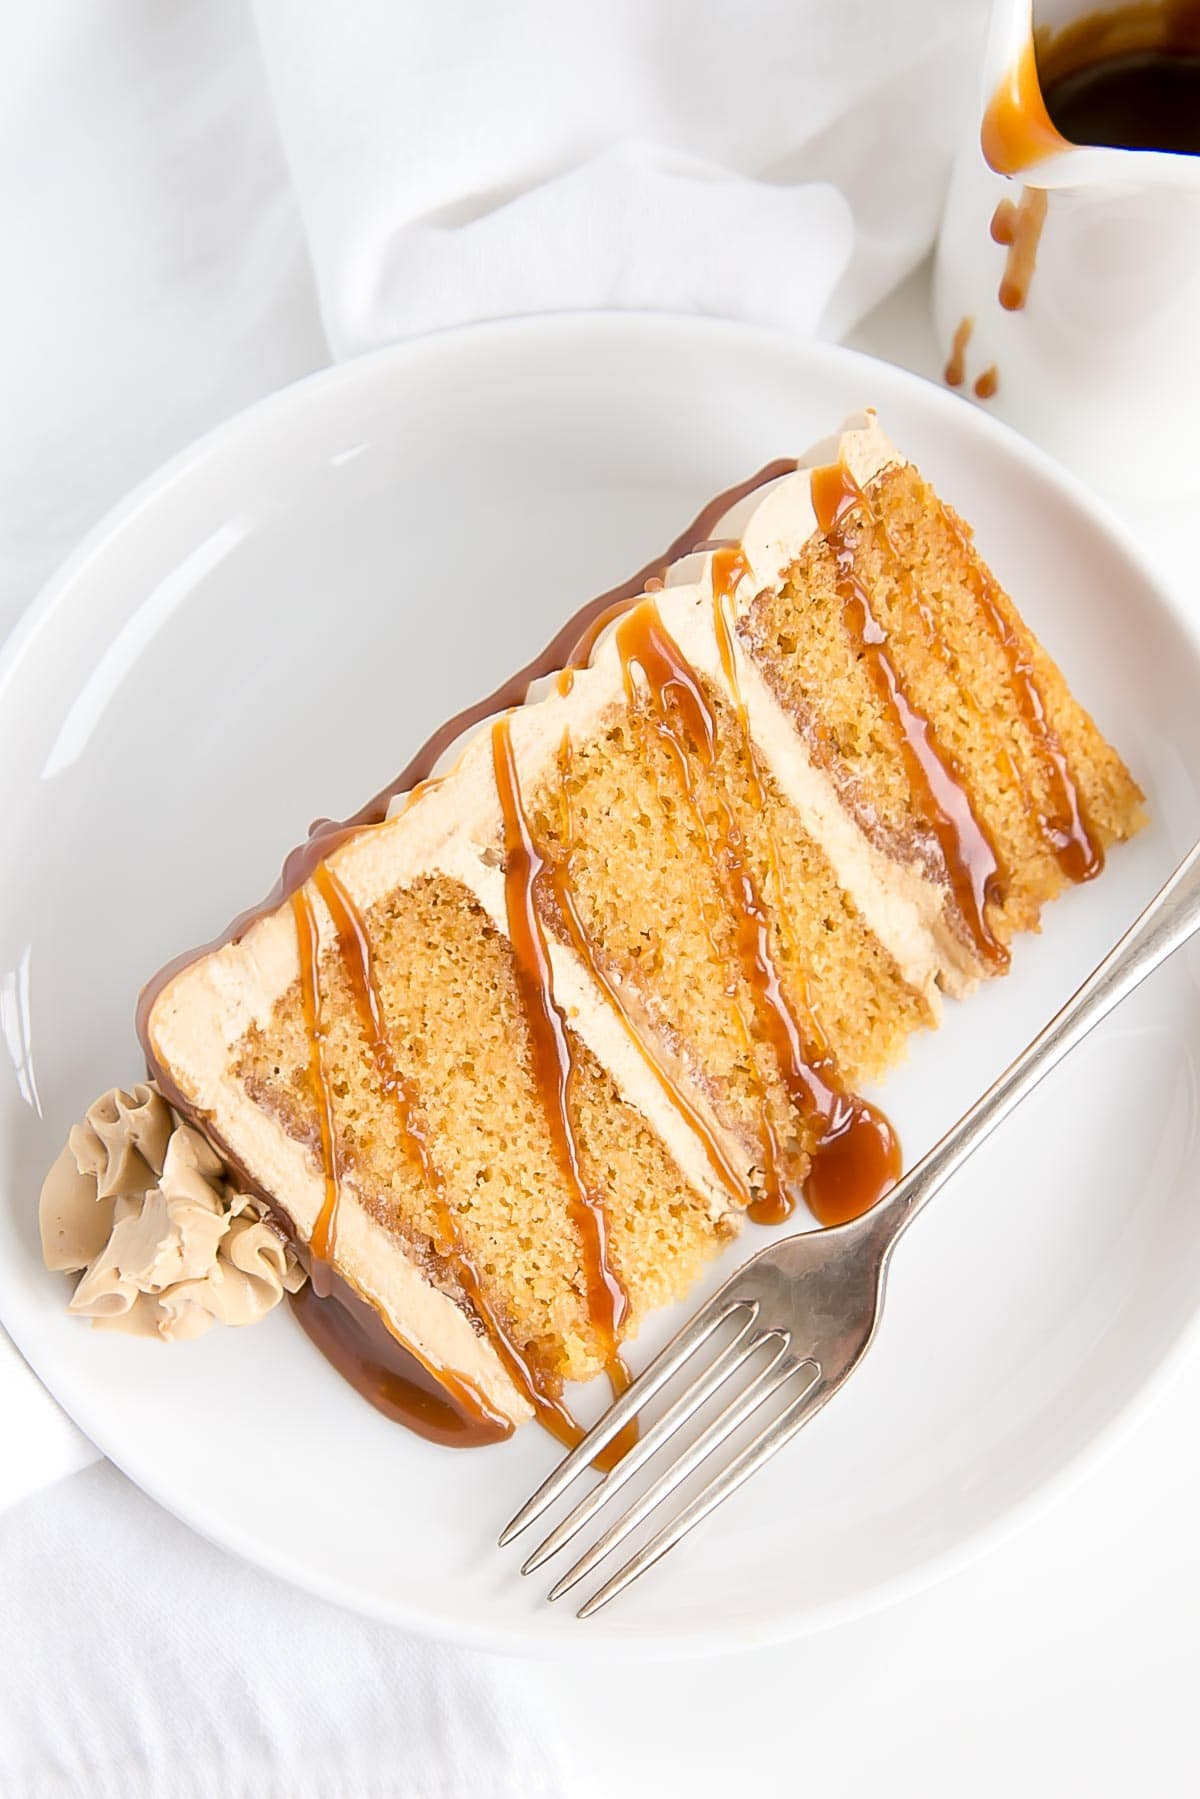 Slice of caramel cake on a plate, drizzled with more caramel.